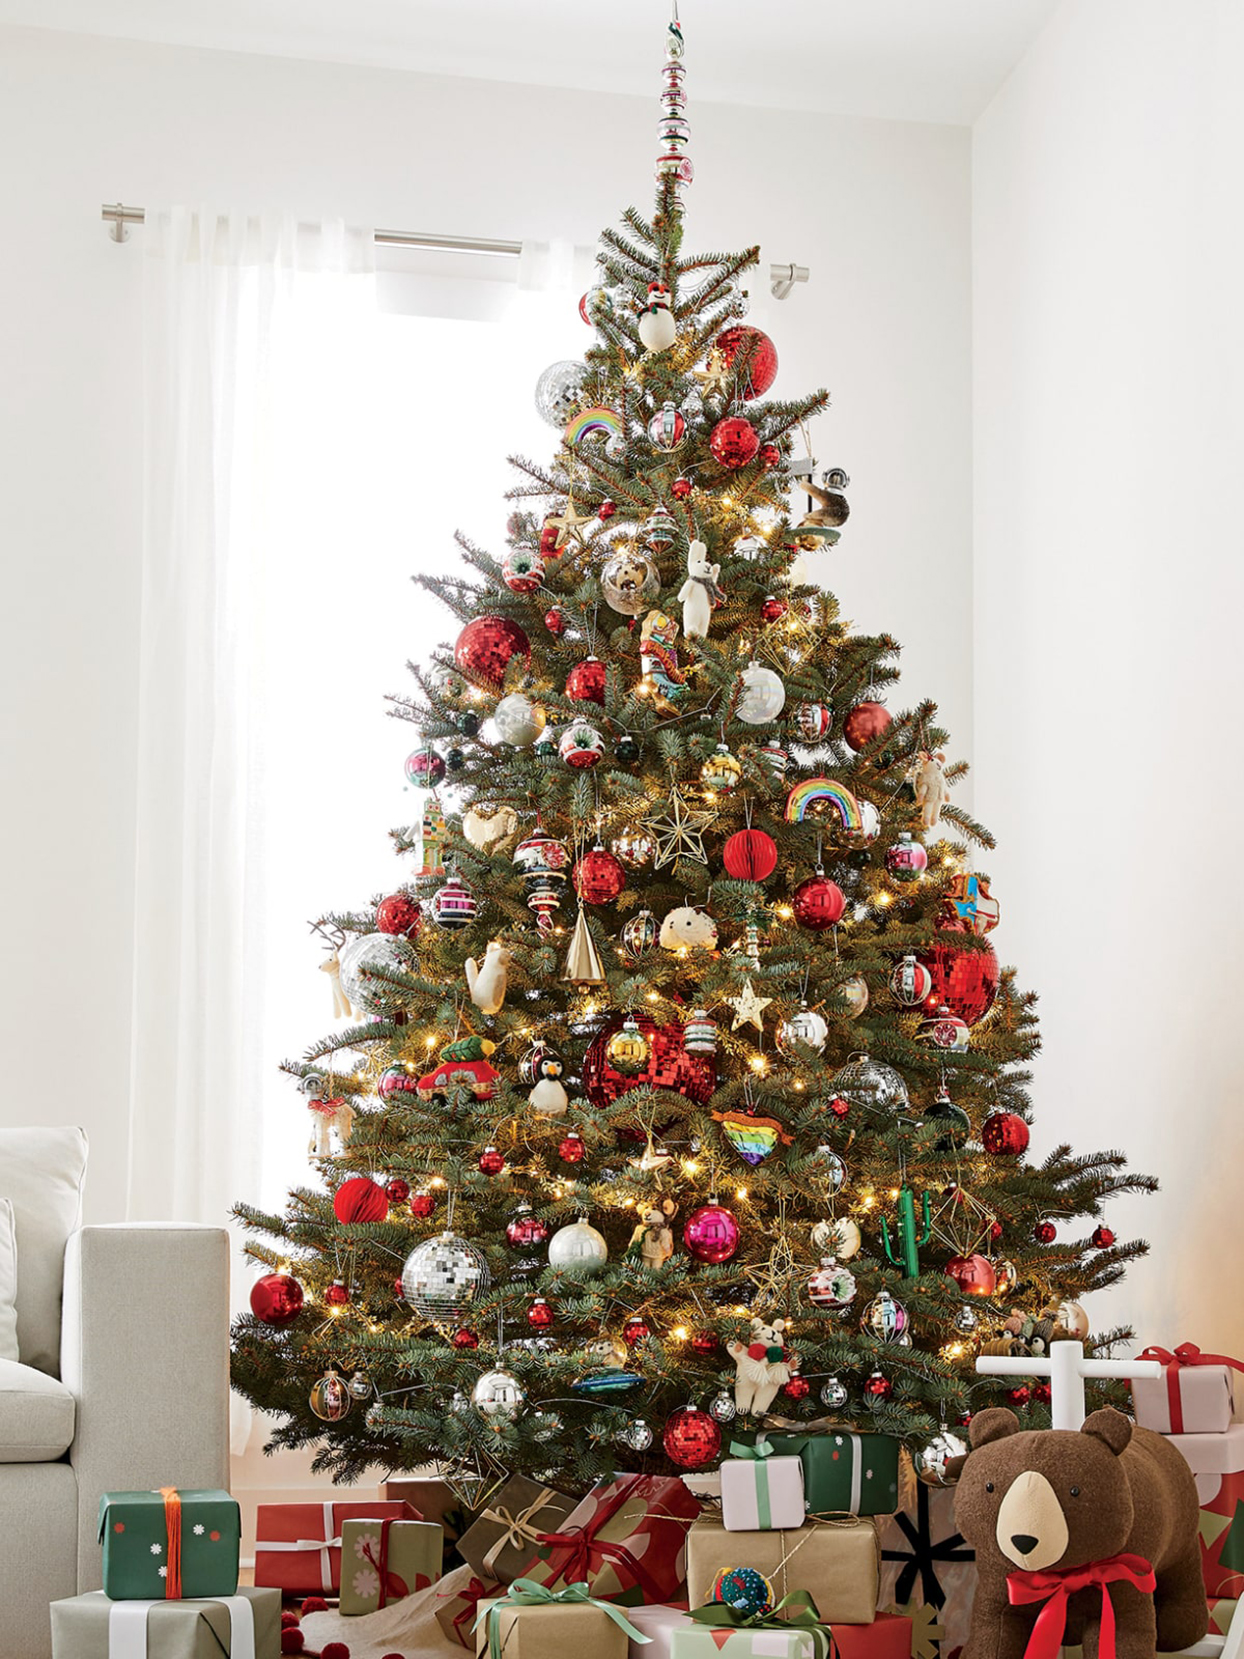 christmas tree decorated with colorful ornaments